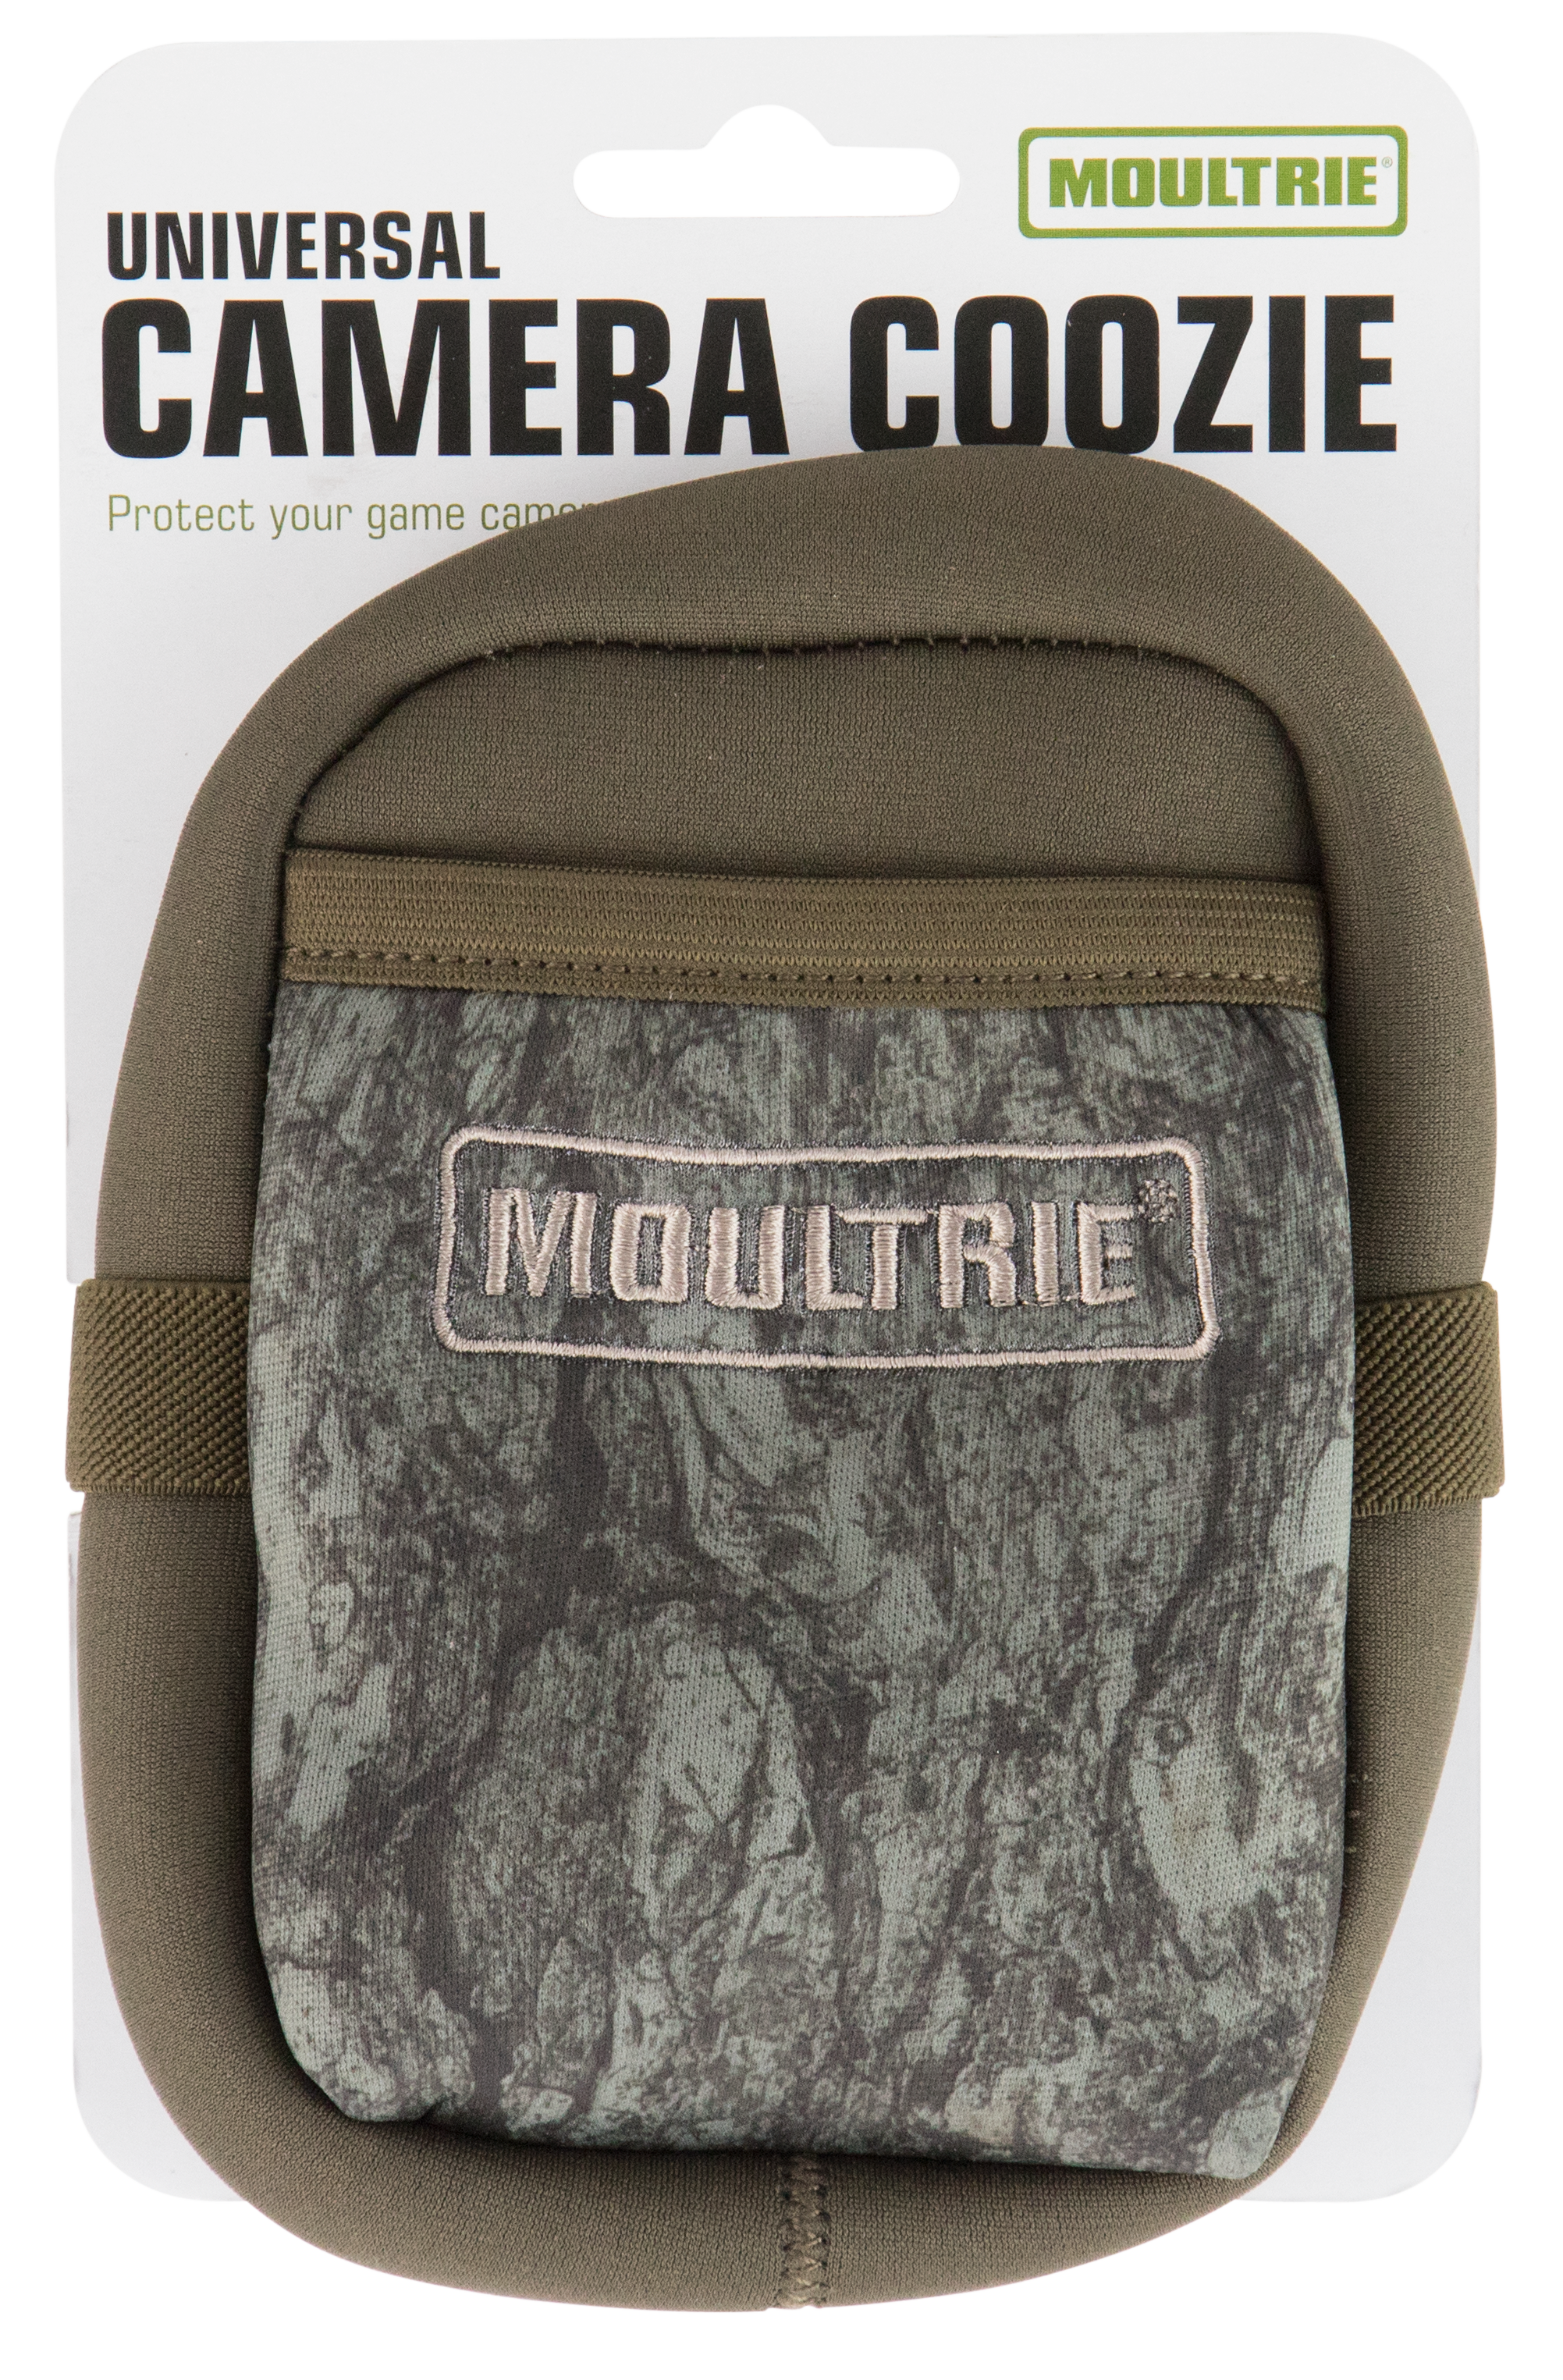 Moultrie MCA13292 Camera Coozie Moultrie Pine Camo